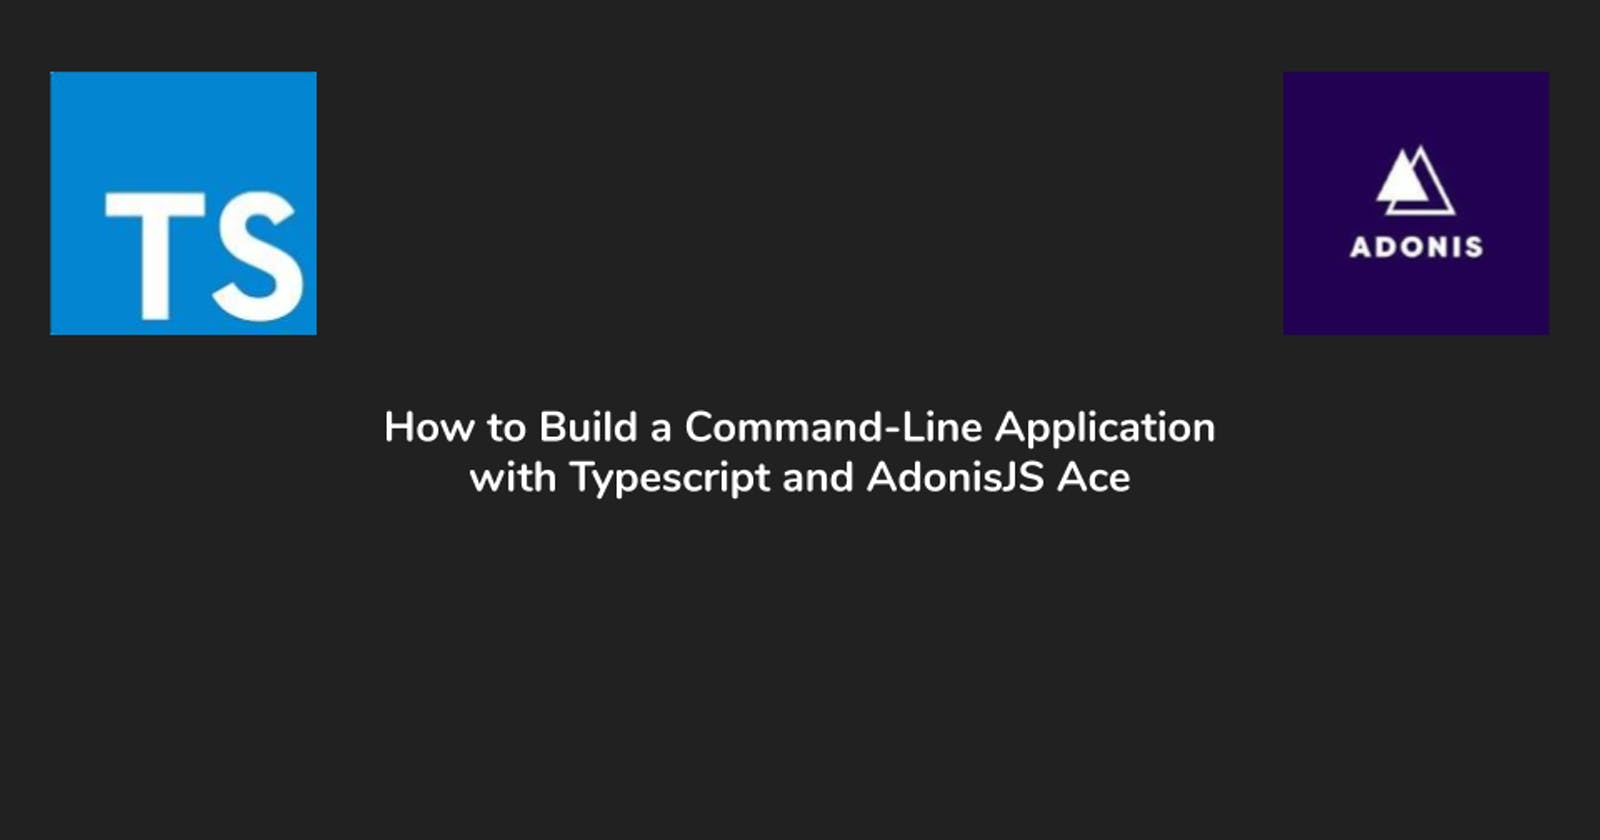 How to Build a Command-Line Application with Typescript and AdonisJS Ace